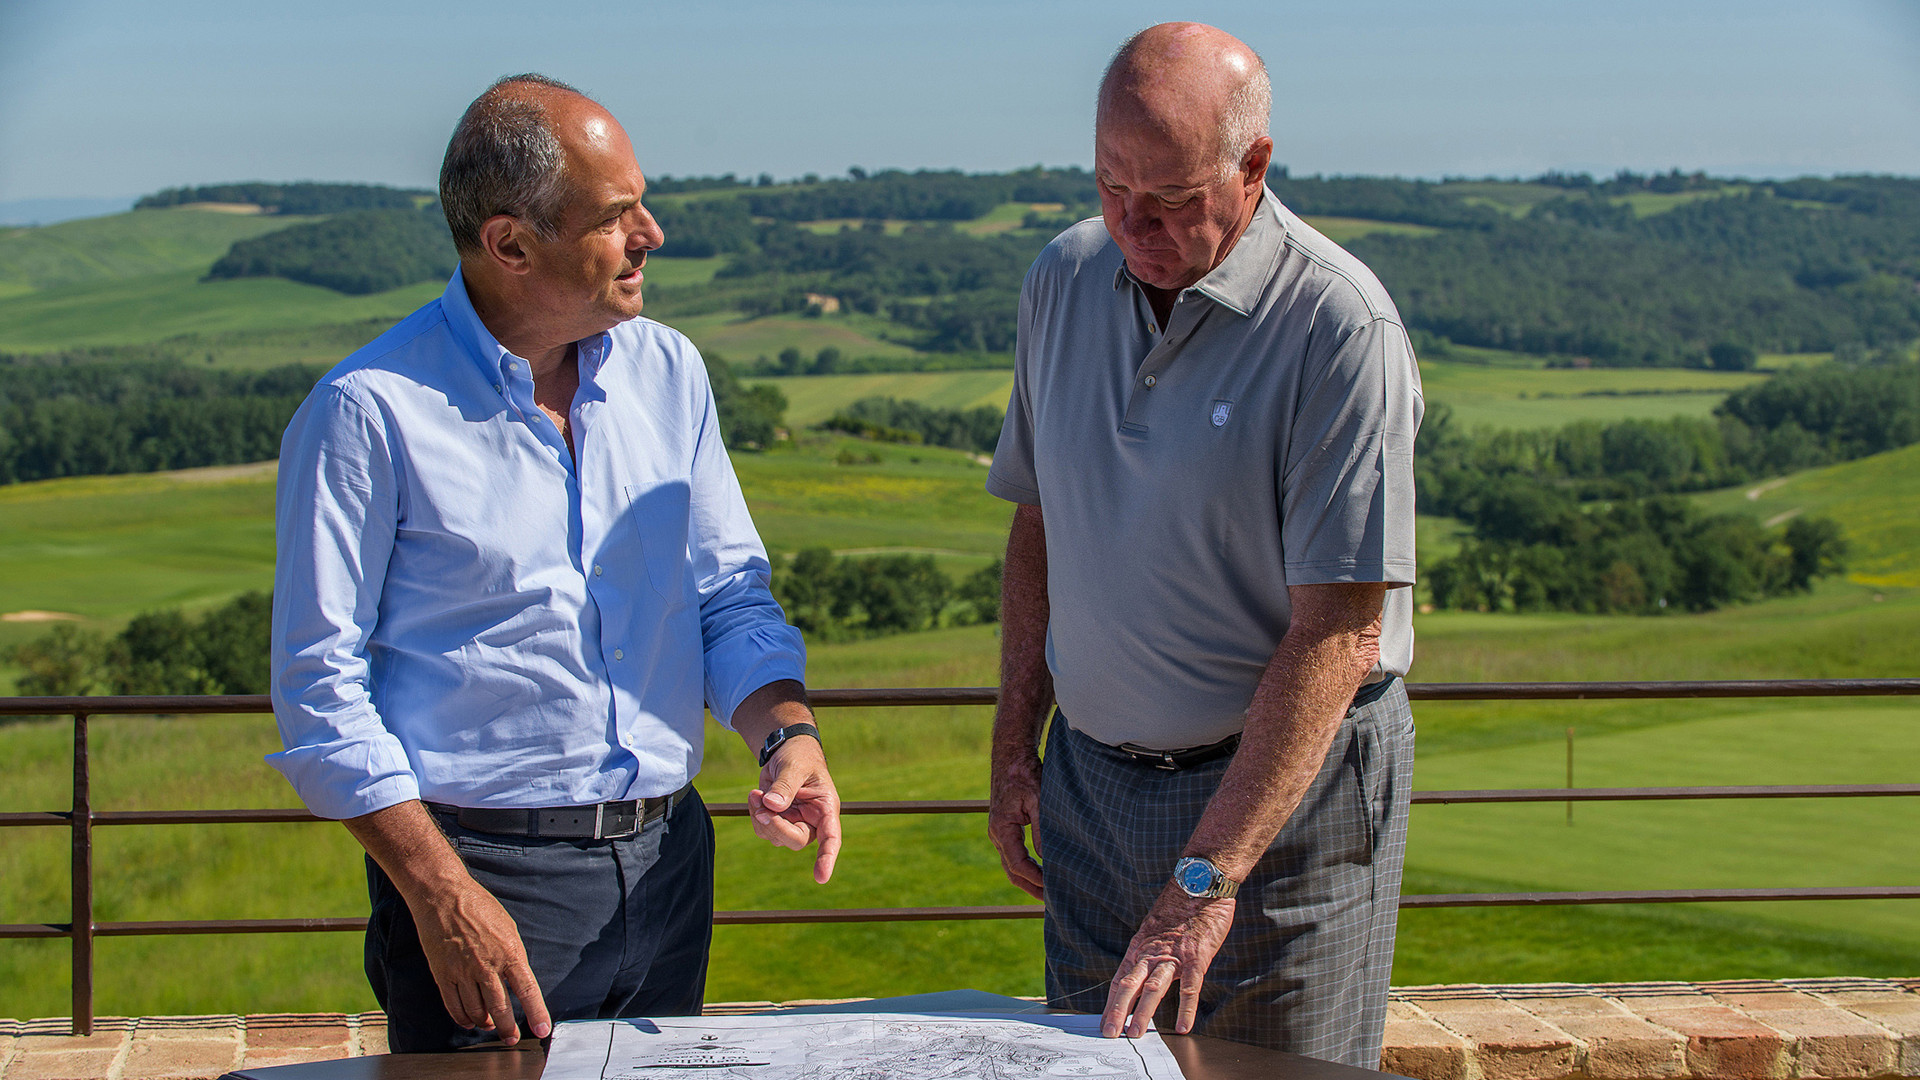 Massimo Ferragamo and Tom Weiskopf viewing development plans